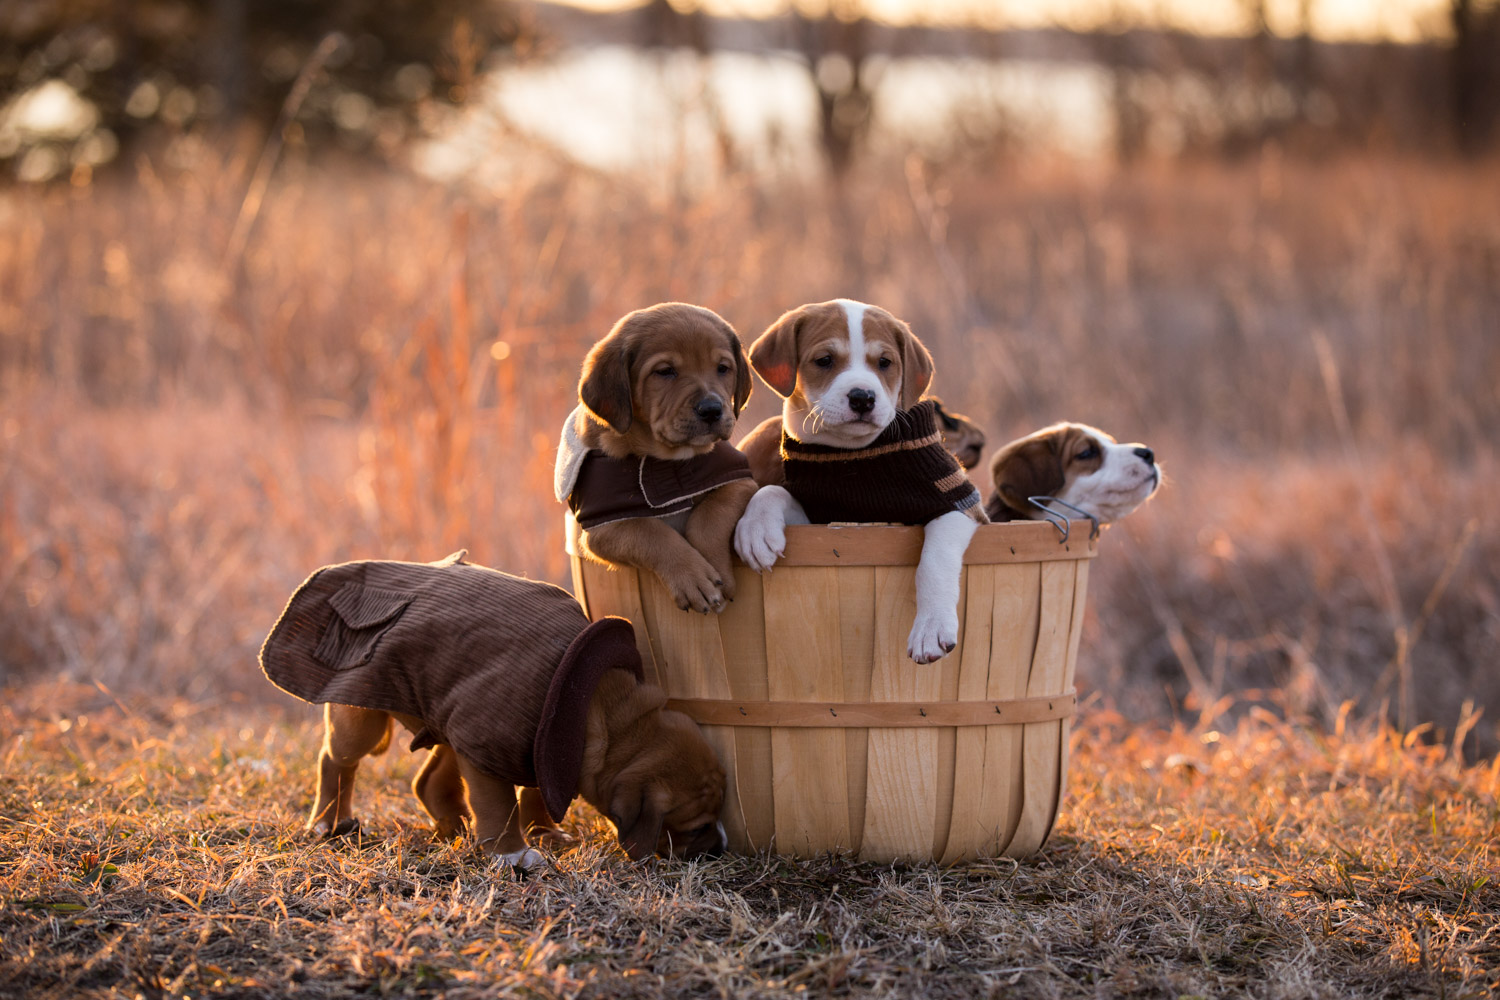 Puppies-blog-13.jpg